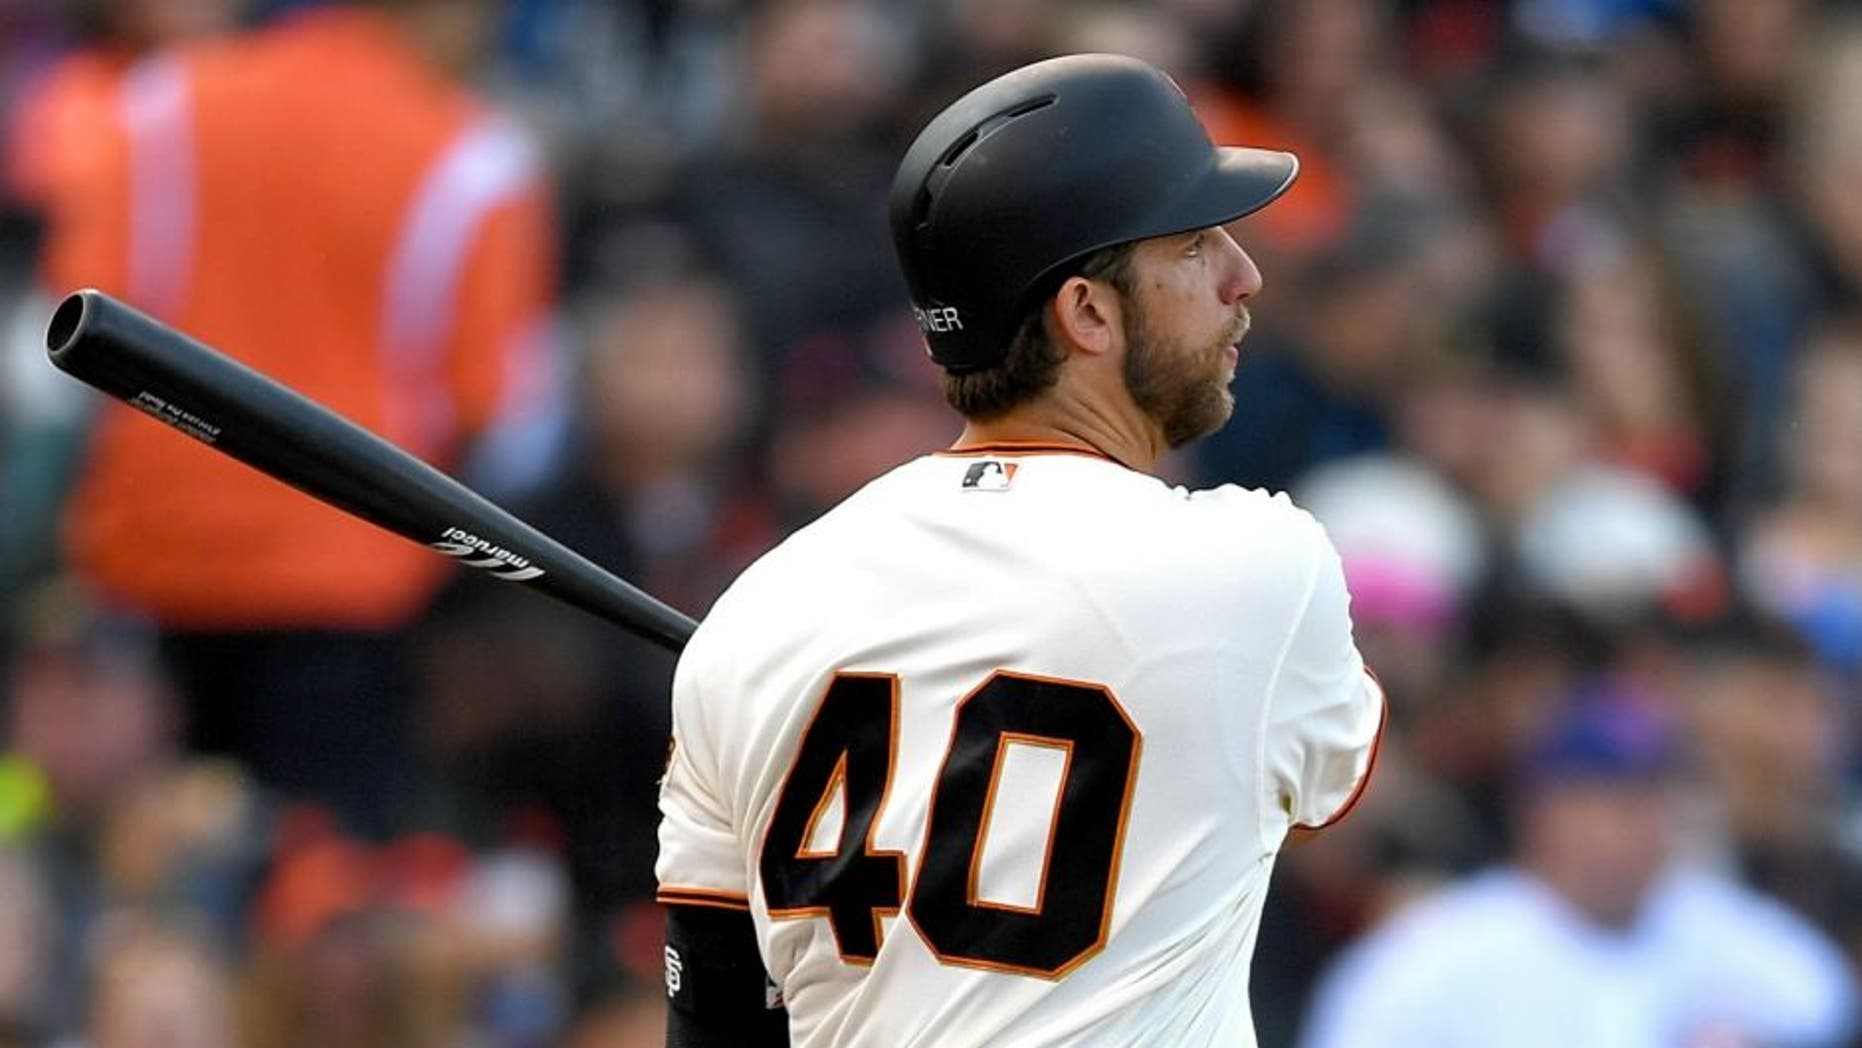 SAN FRANCISCO, CA - MAY 22: Madison Bumgarner #40 of the San Francisco Giants hits an rbi double scoring Gregor Blanco #7 against the Chicago Cubs in the bottom of the fifth inning at AT&T Park on May 22, 2016 in San Francisco, California. (Photo by Thearon W. Henderson/Getty Images)